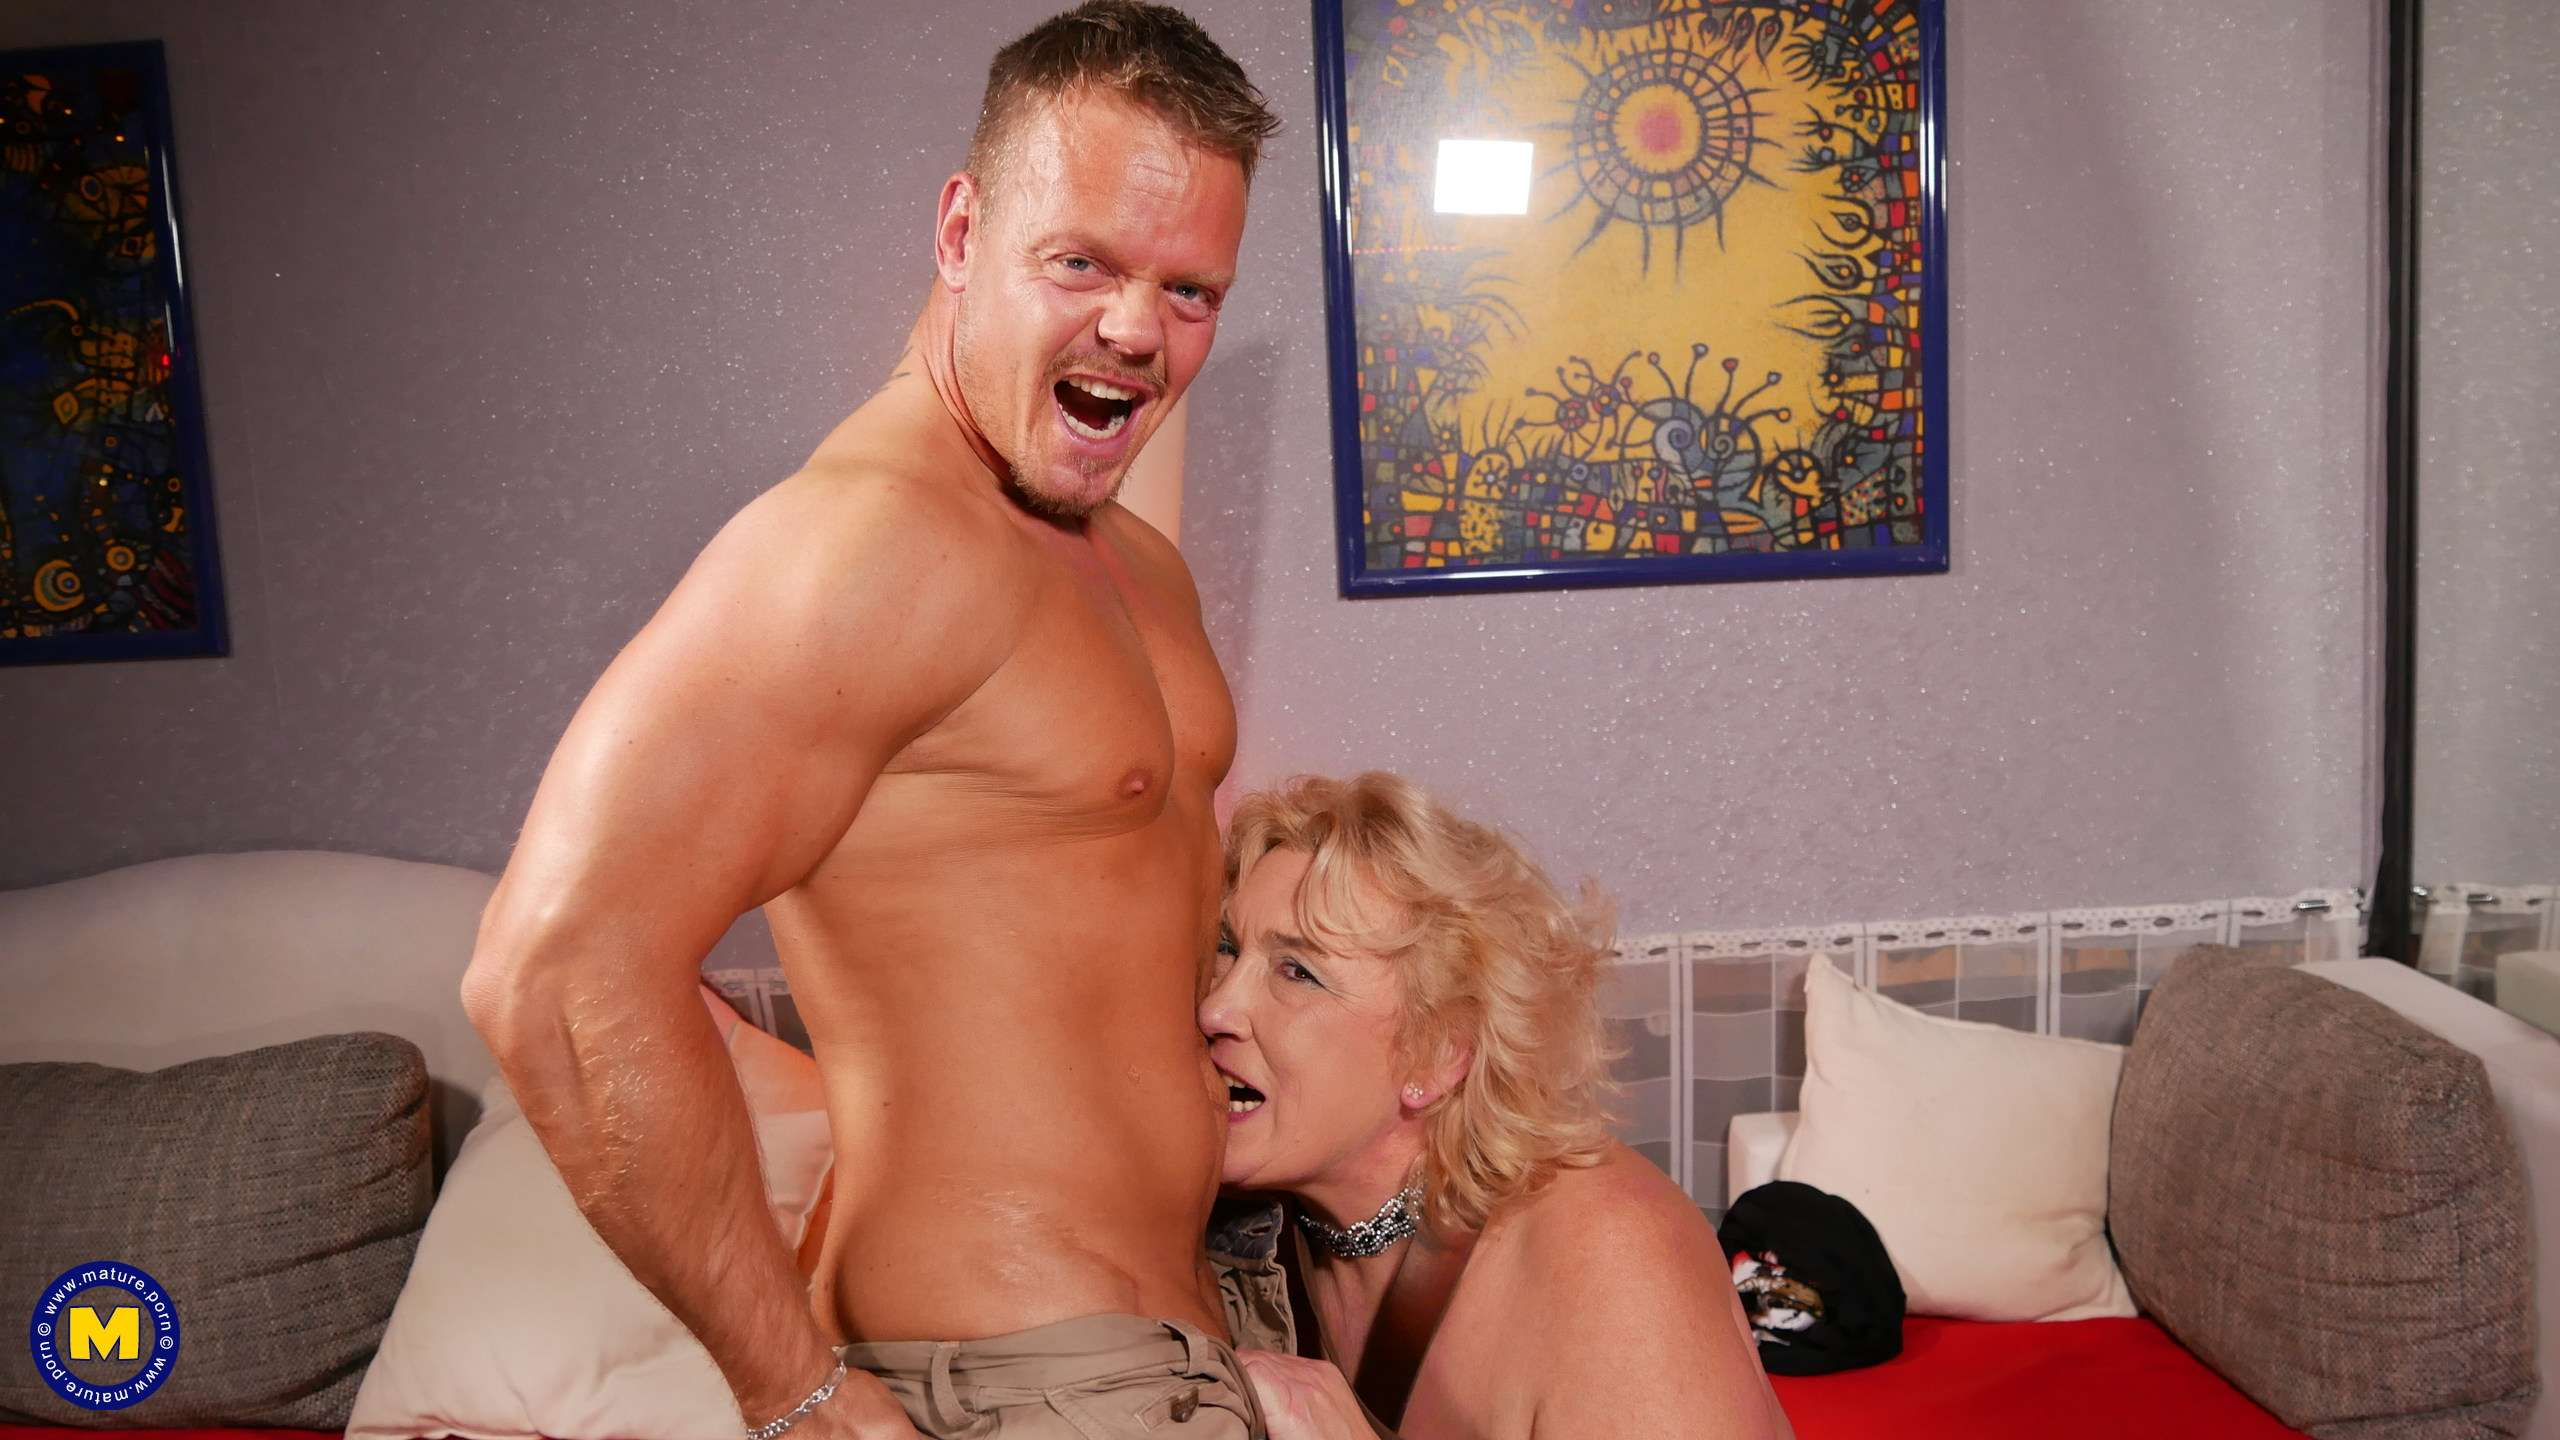 This German grandma has loads of fun with her muscled toy boy